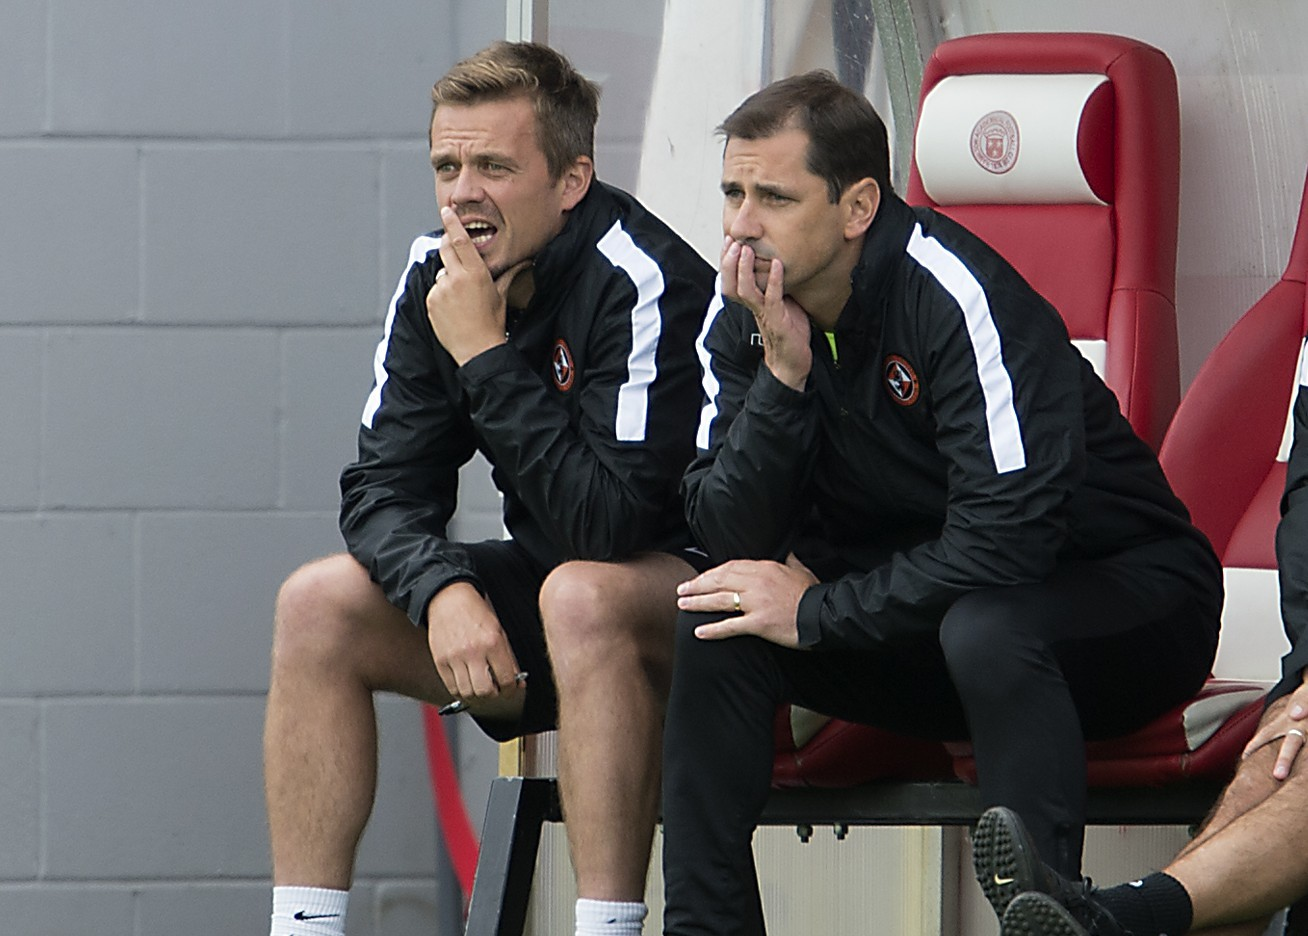 Dundee United boss Jackie McNamara hasn't had too much to cheer about this season. He'll need his strike force to start banging in the goals.